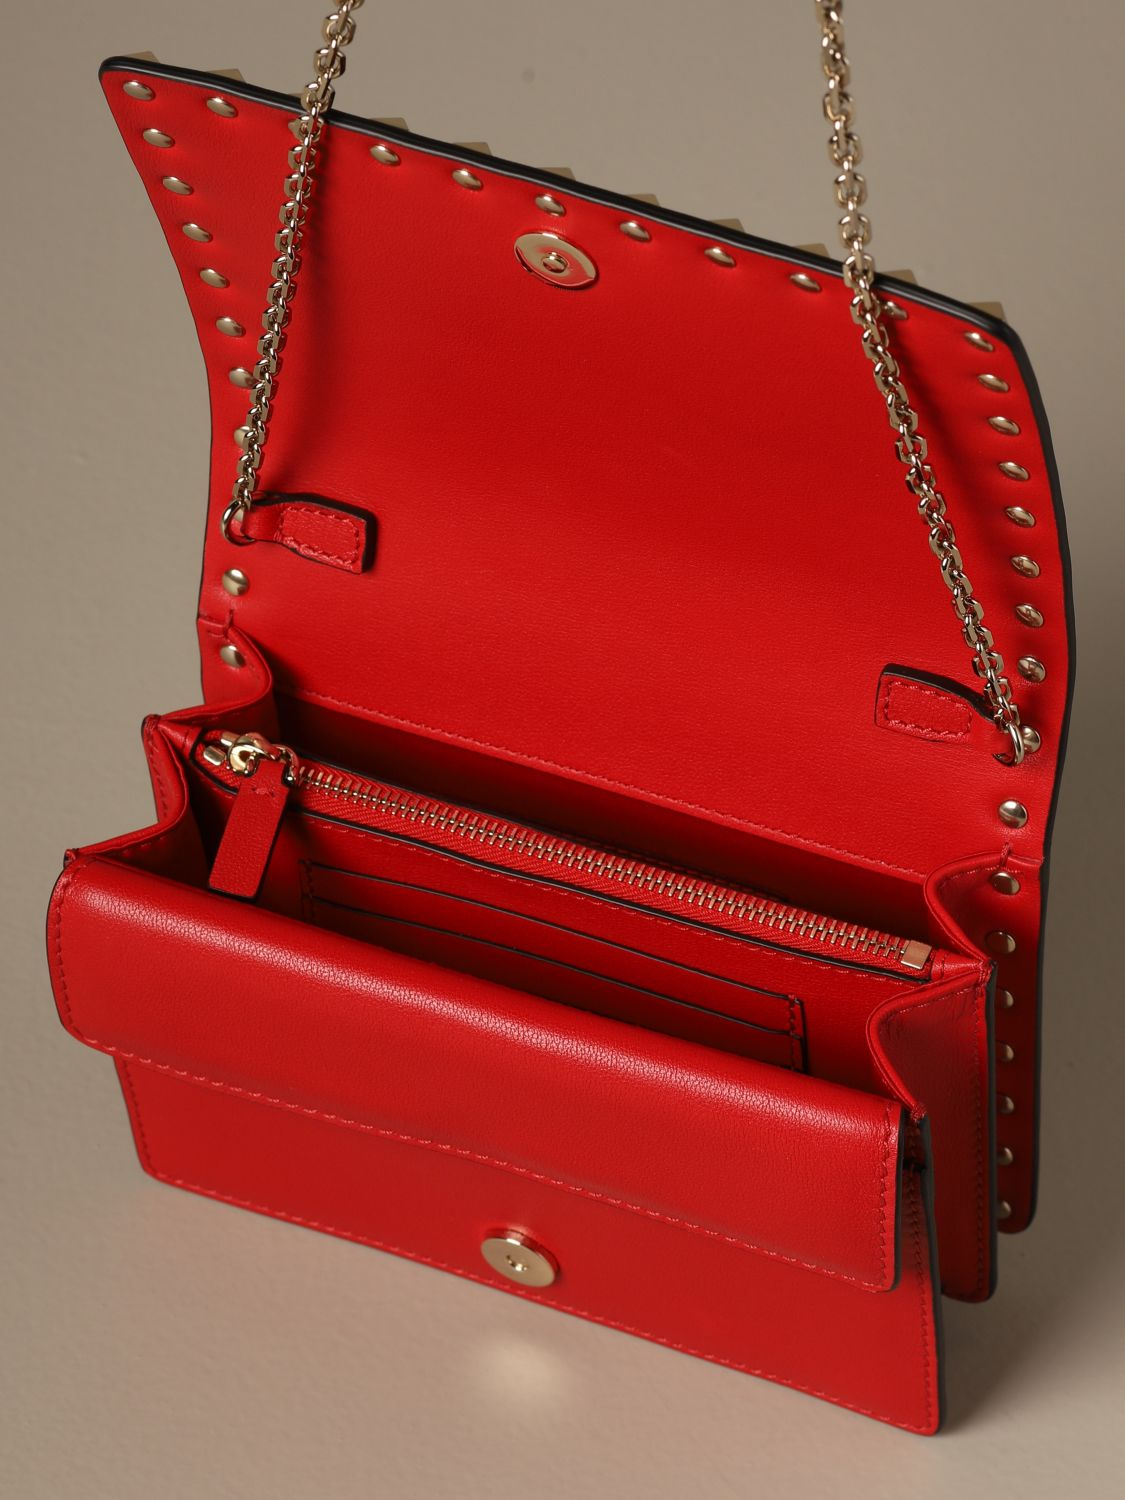 Mini bag Valentino Garavani: Valentino Garavani Rockstud leather shoulder bag red 5